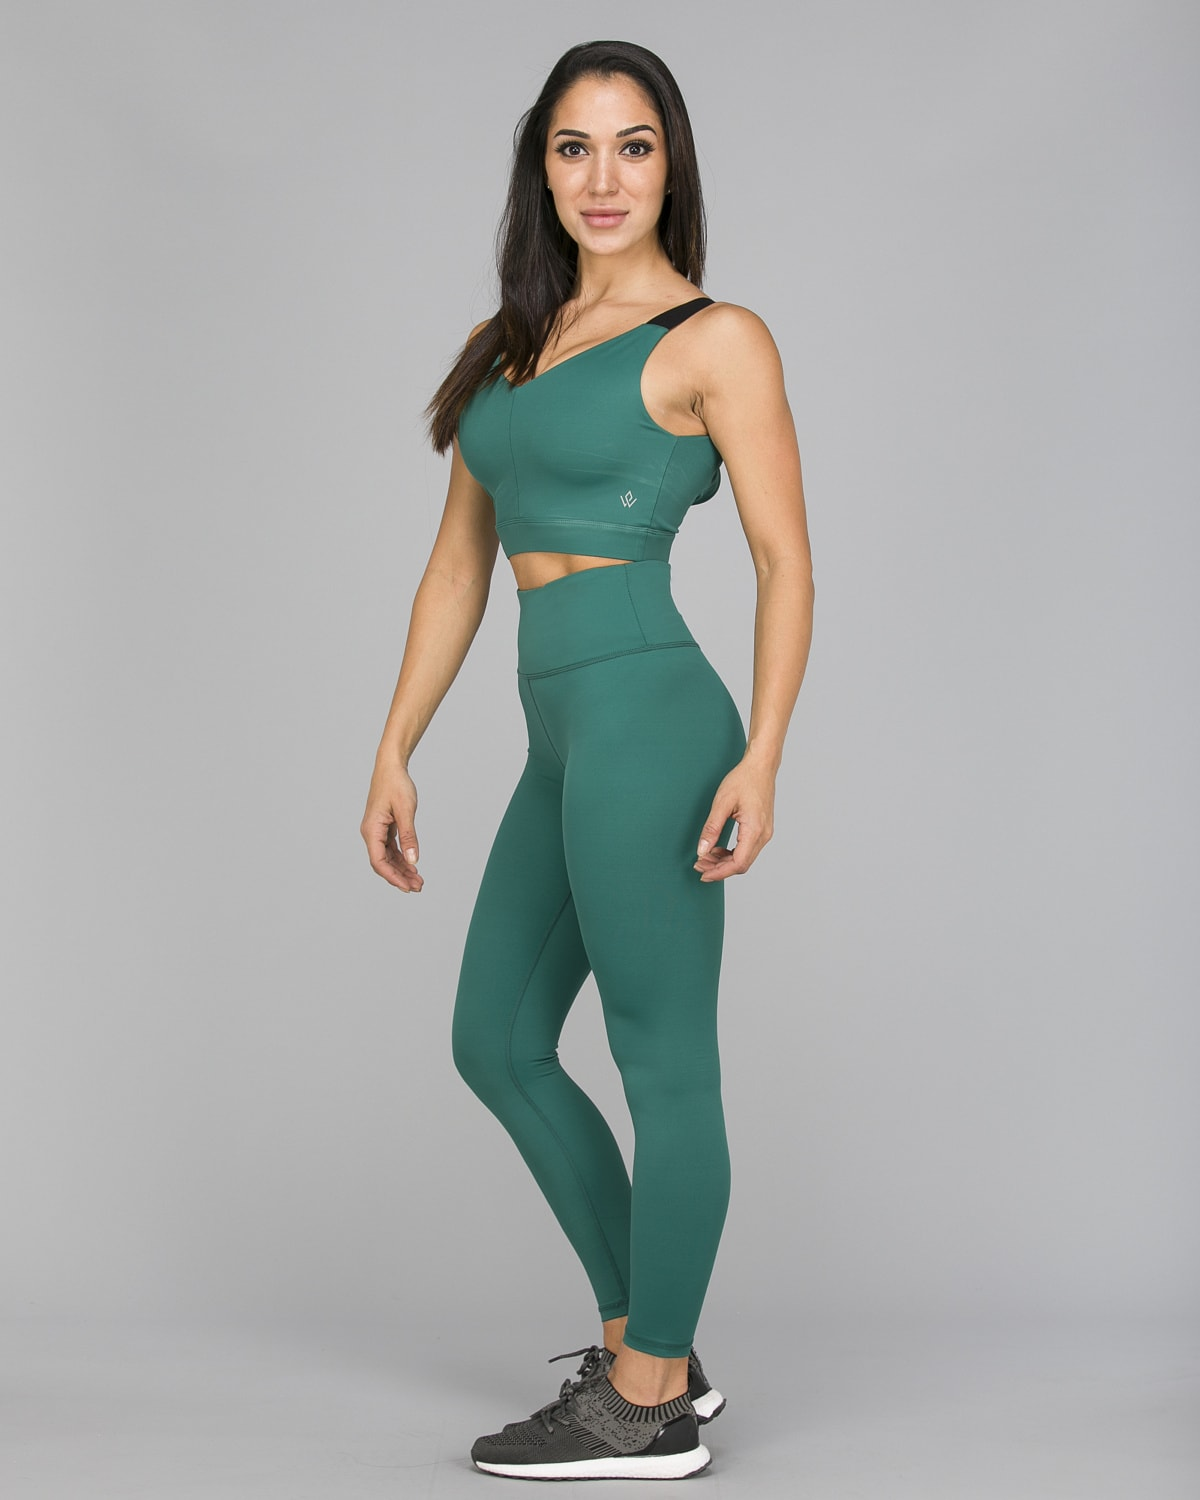 Workout Empire – With Confidence Shape Leggings – Emerald Green2